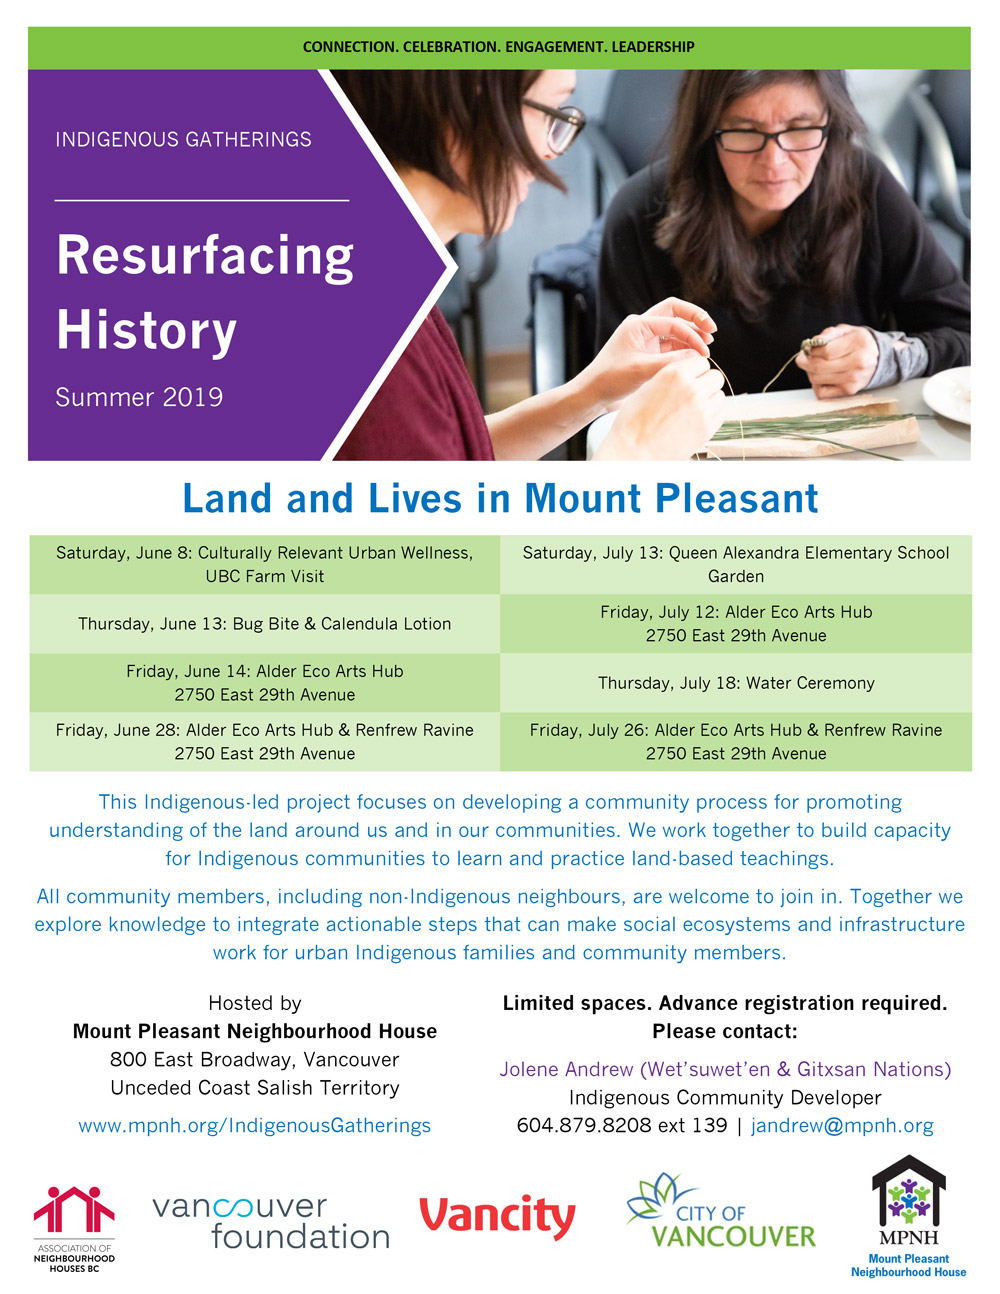 An image of the poster with event details, featuring a photo of two Indigenous people making pine needle baskets.